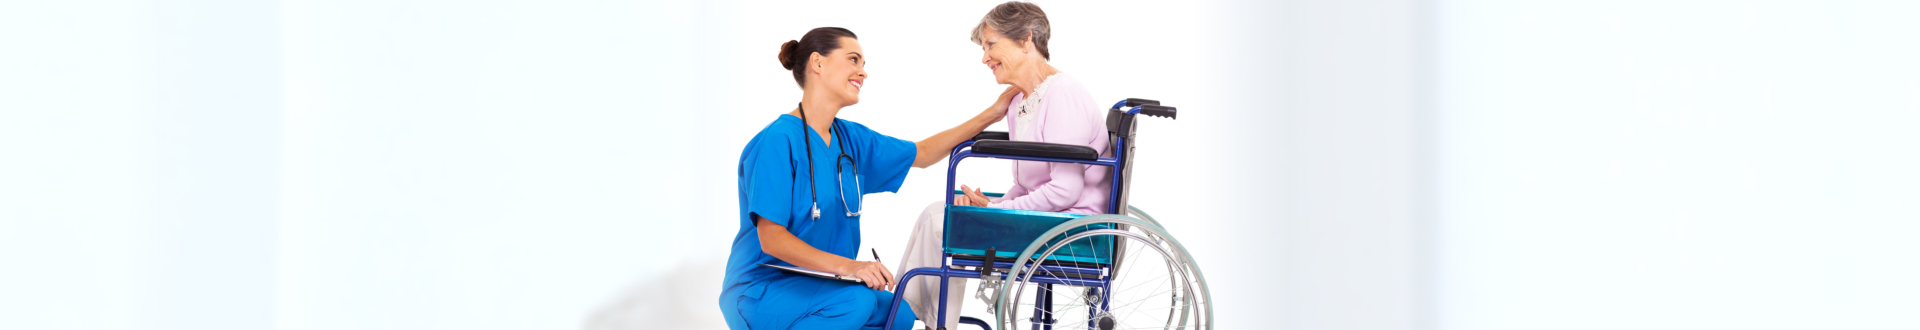 female medical staff with senior woman on wheelchair smiling